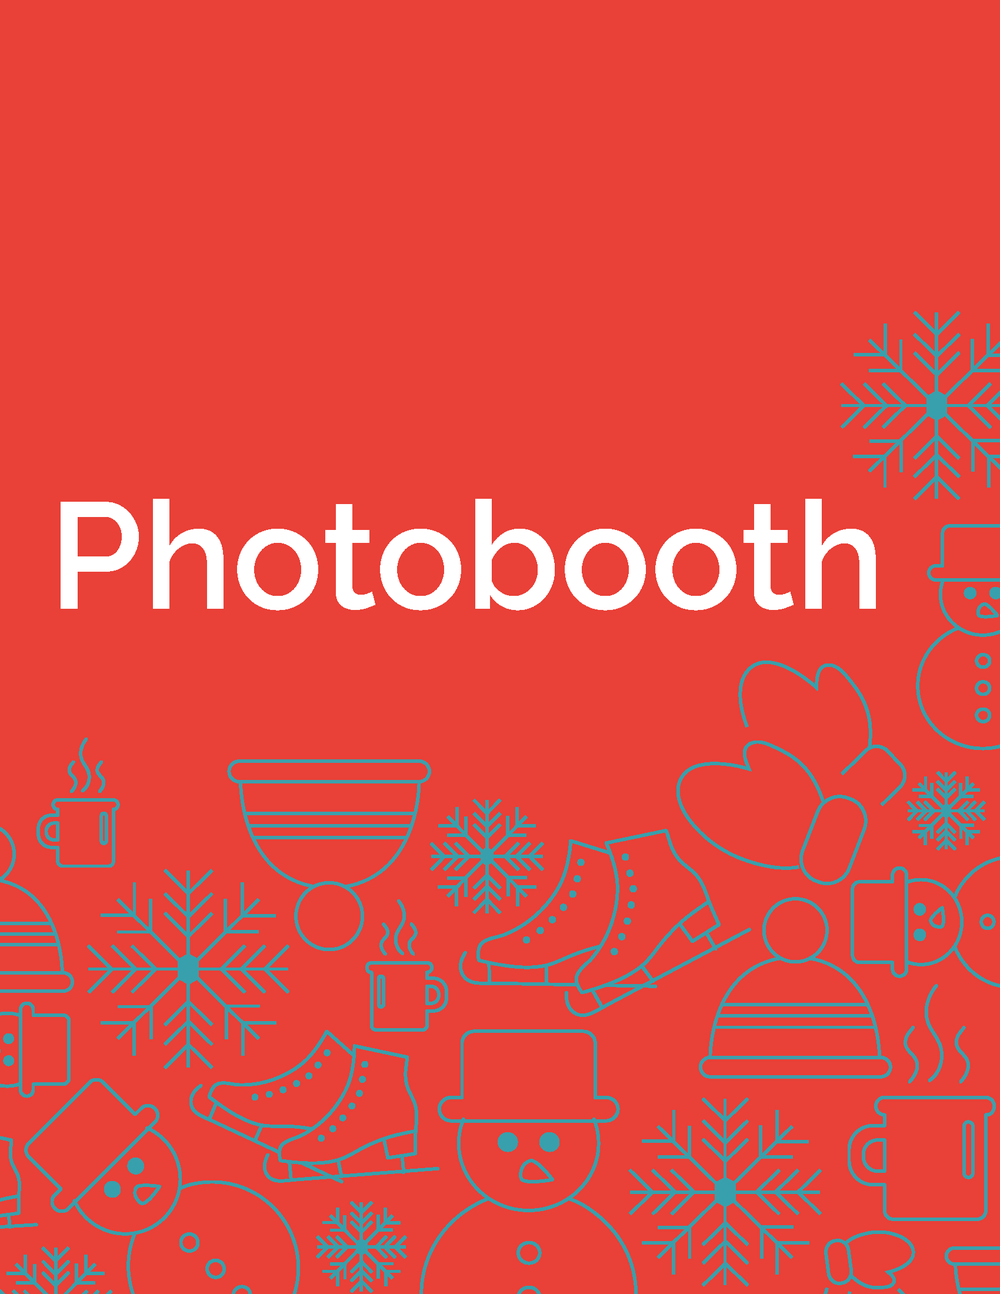 Photobooth Sign.png